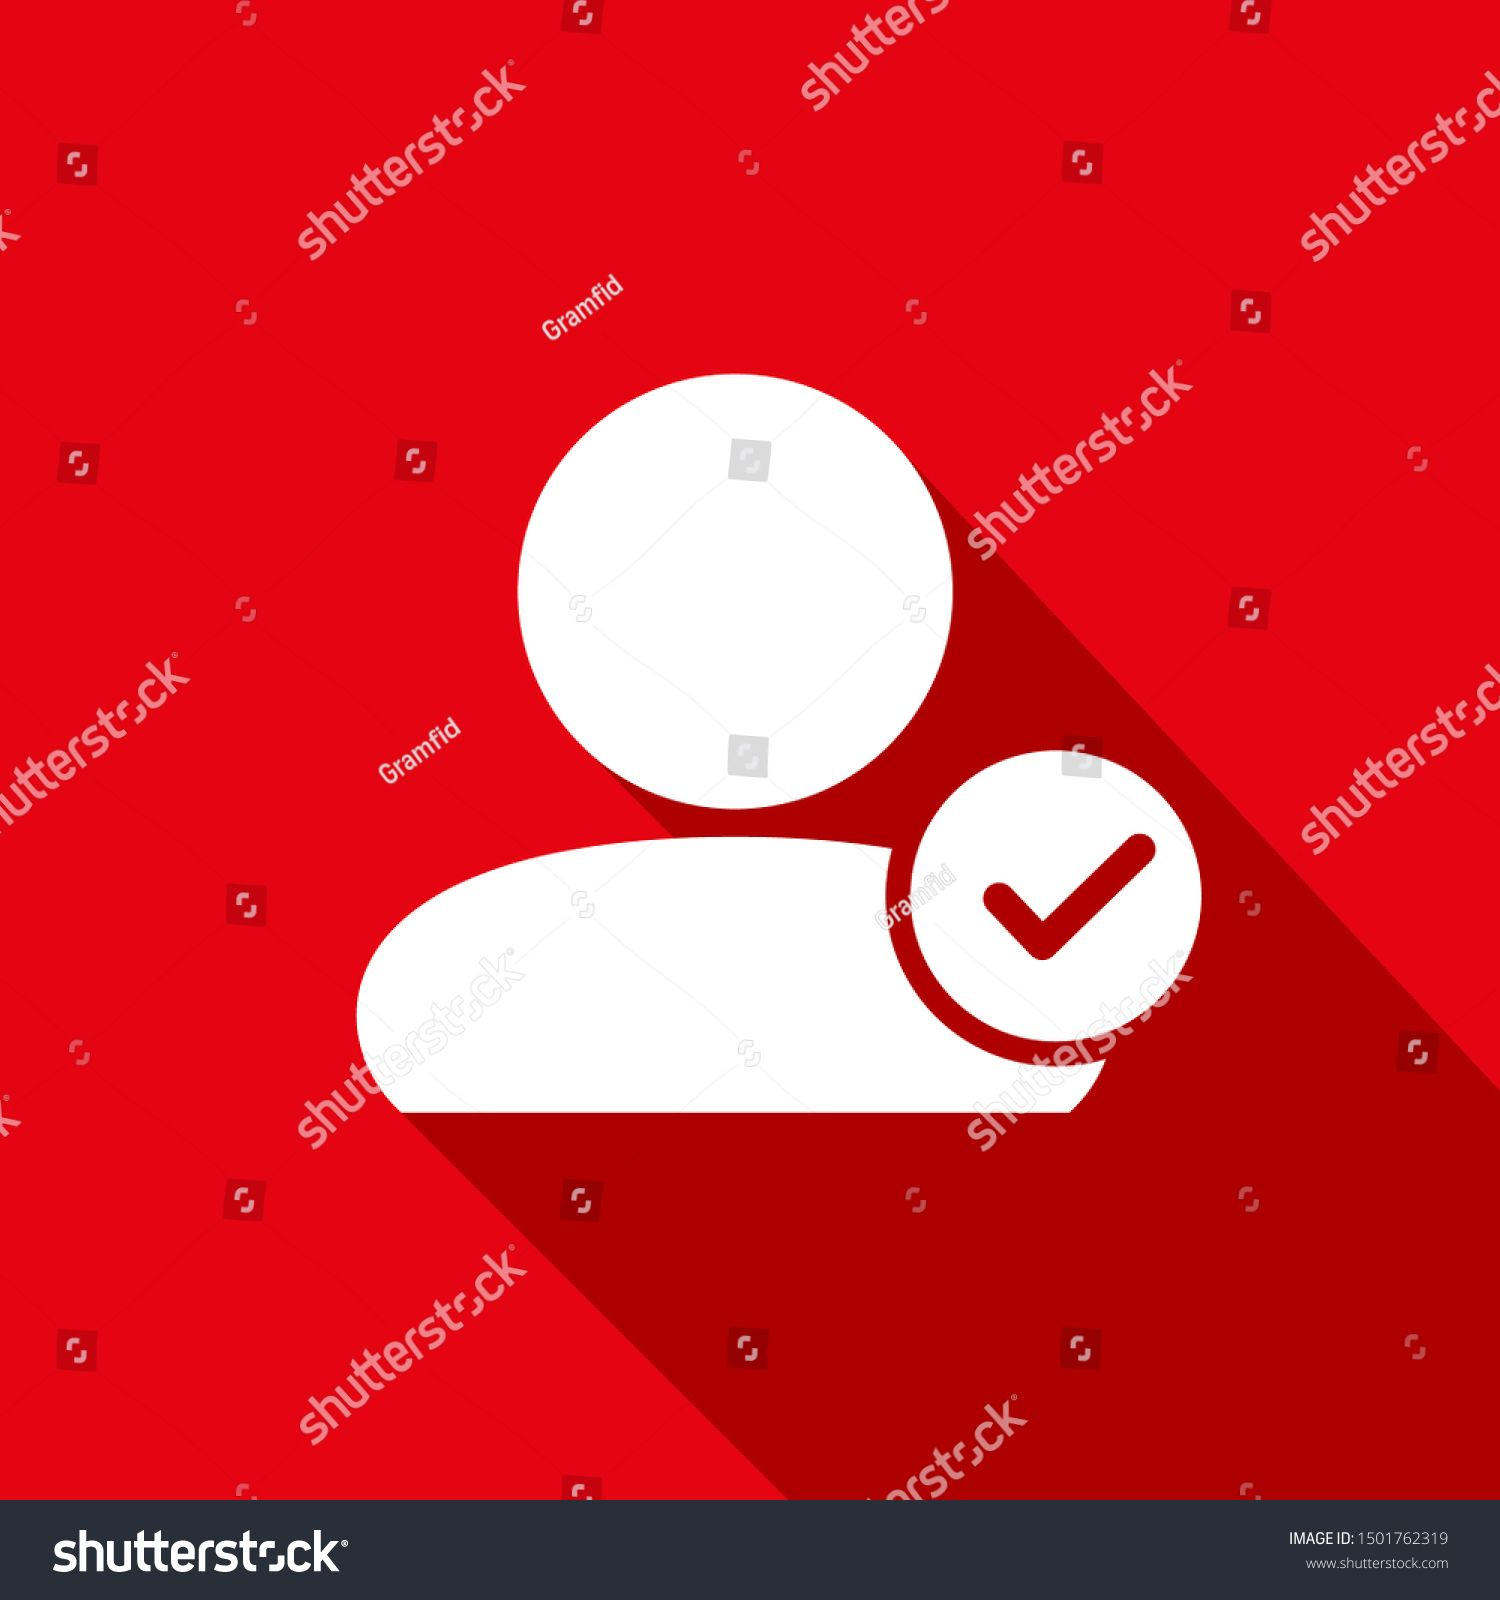 User Profile Sign Web Icon With Check Mark User Authorized Vector Illustration Design Element Flat Style Des In 2020 Vector Illustration Design Web Icons Icon Design